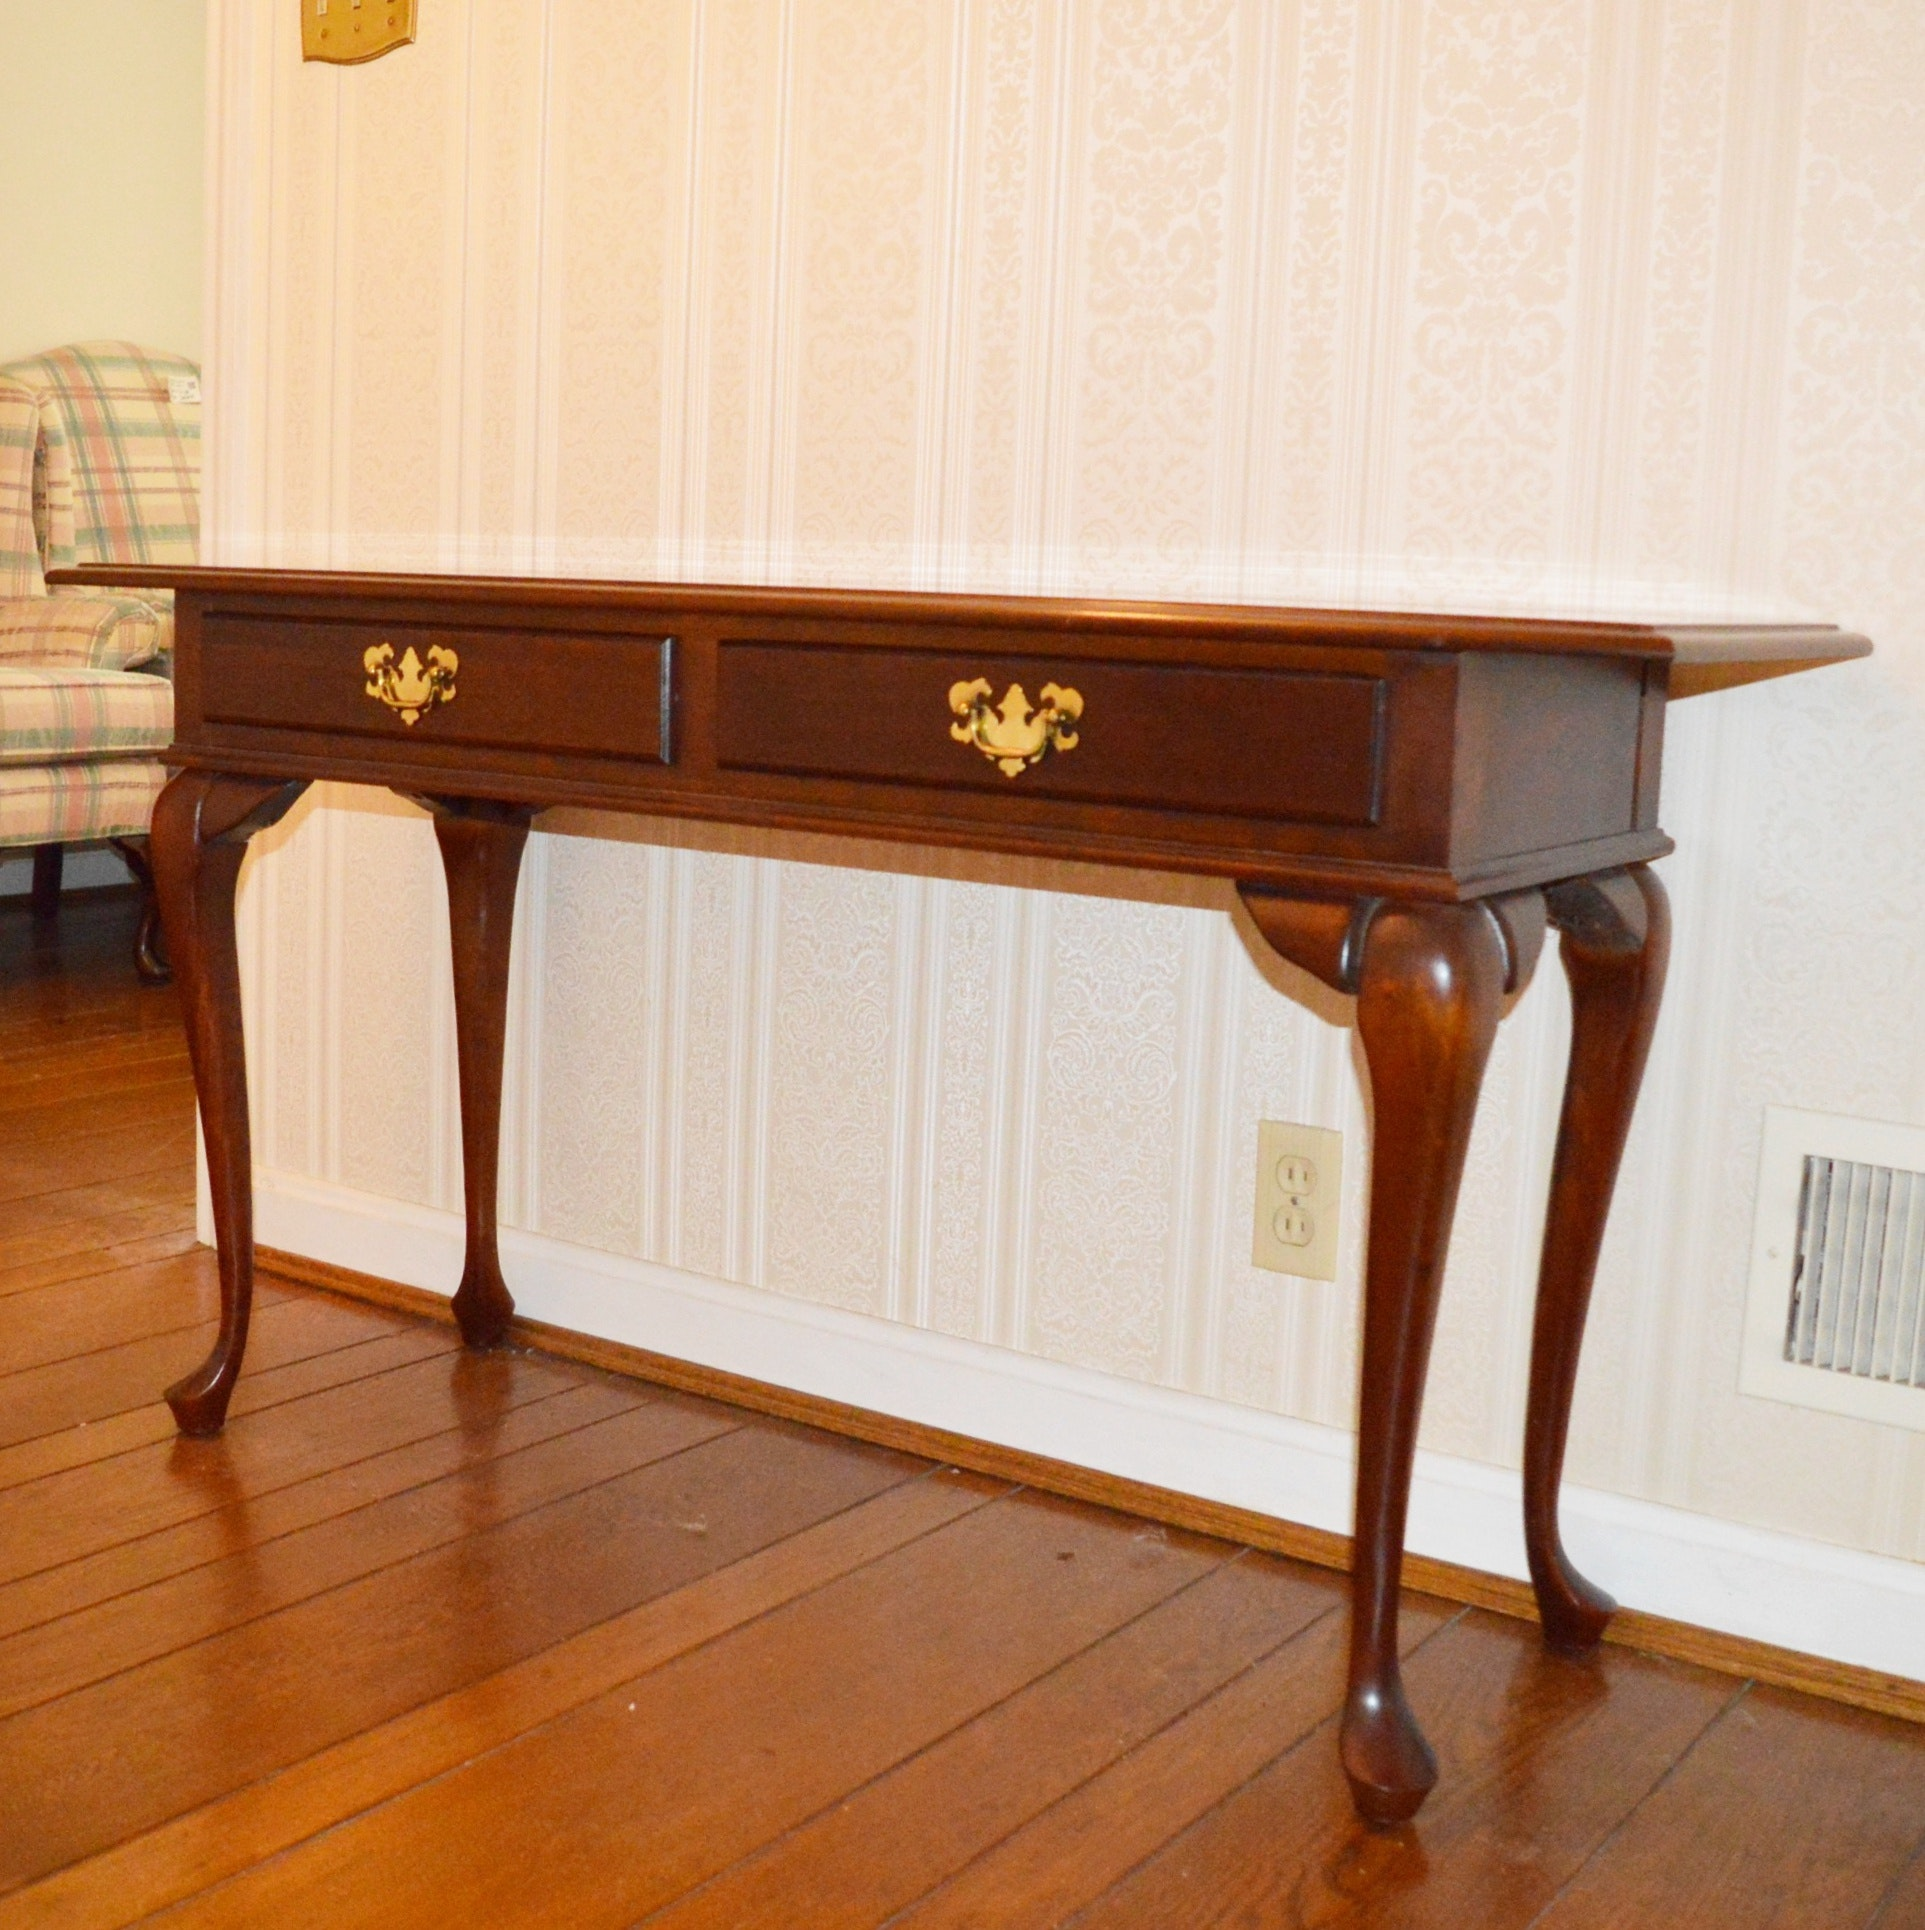 Mahogany Entry Table by Cresent Furniture